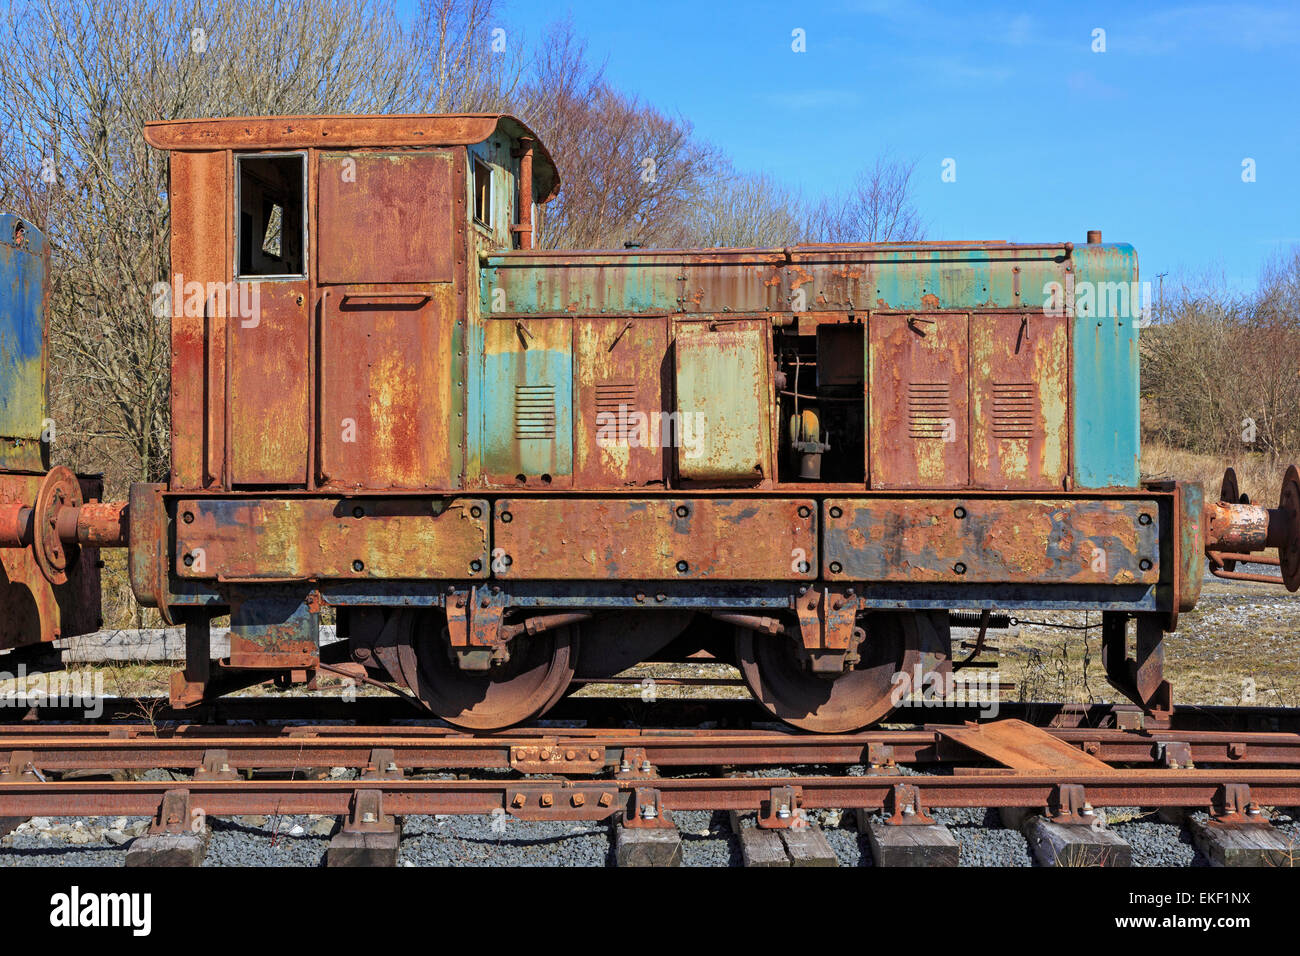 Rusting, disused and abandoned industrial traction train parked on a siding, Ayrshire, Scotland, UK - Stock Image